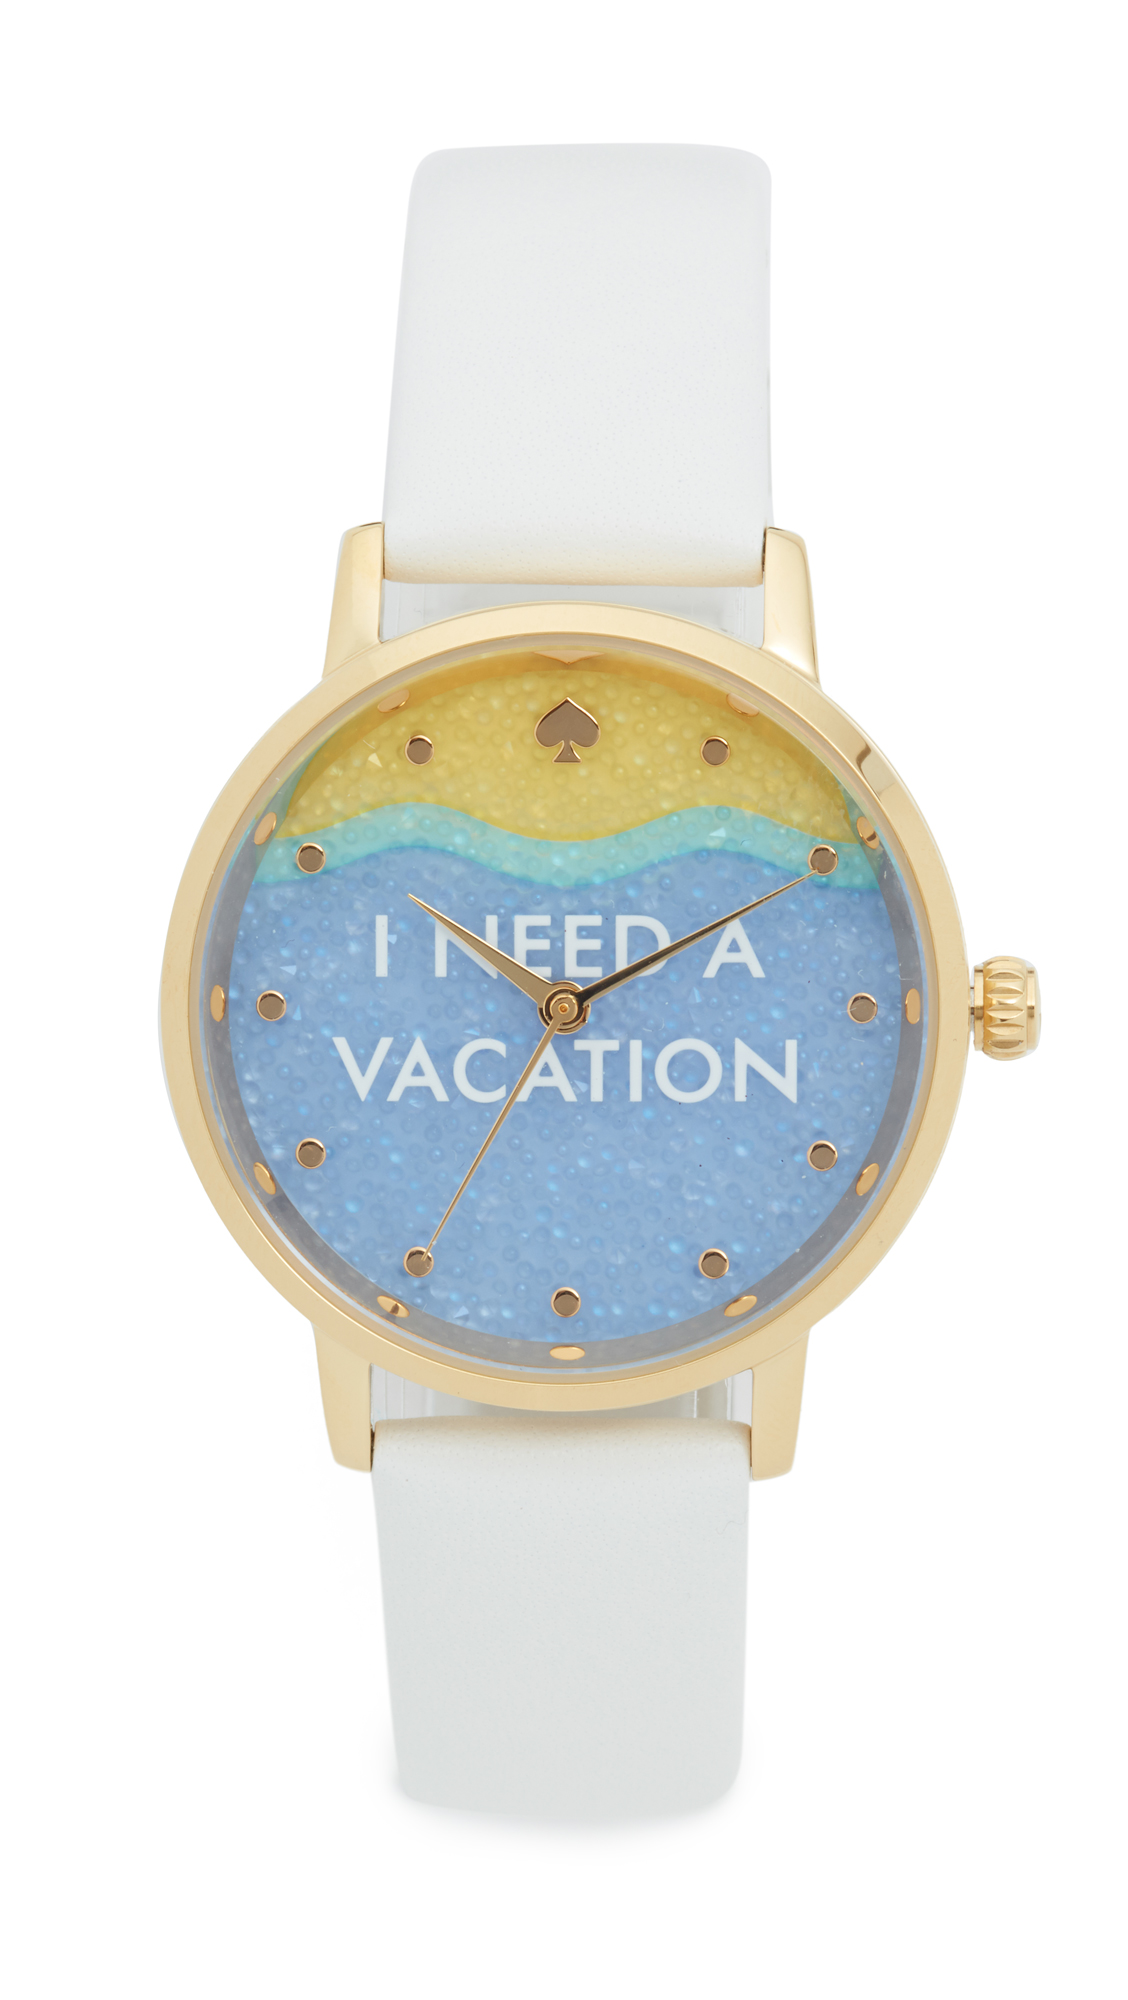 Kate Spade New York I Need A Vacation Metro Watch - Gold/White